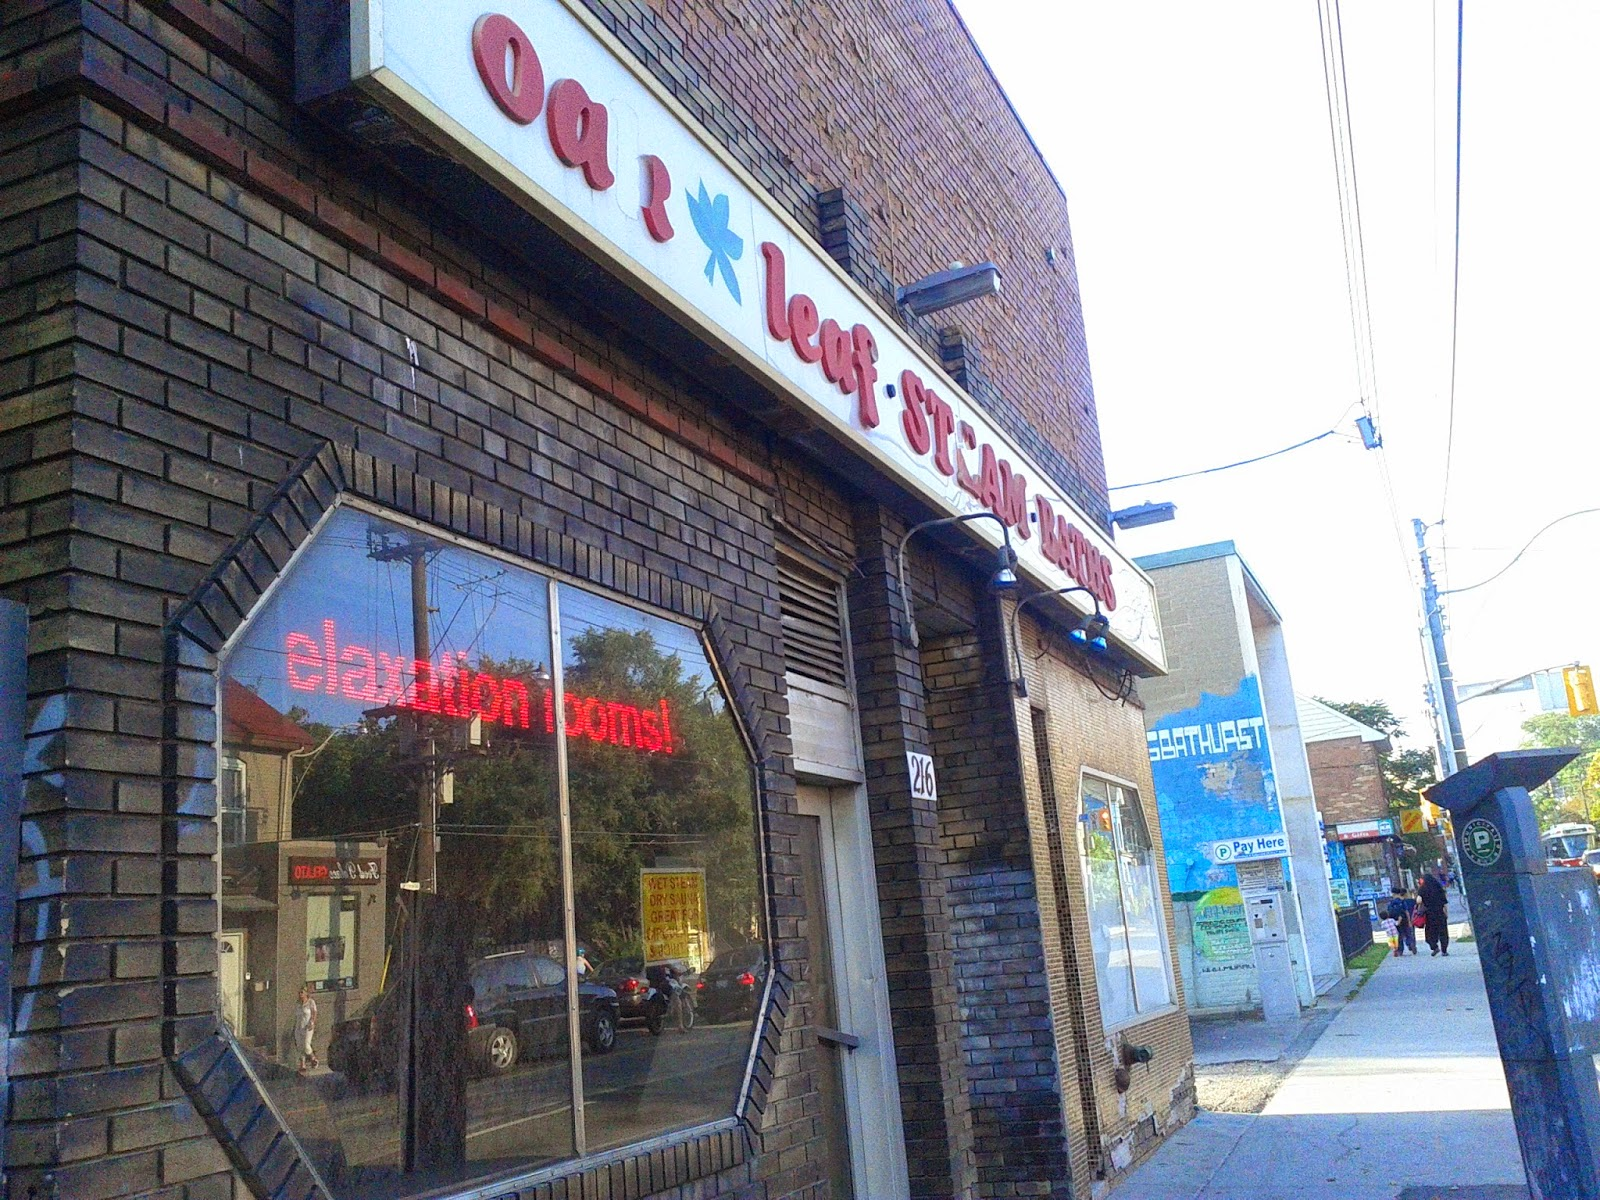 216 Bathurst Street, Oak Leaf Steam Baths, Gay Bath house Toronto